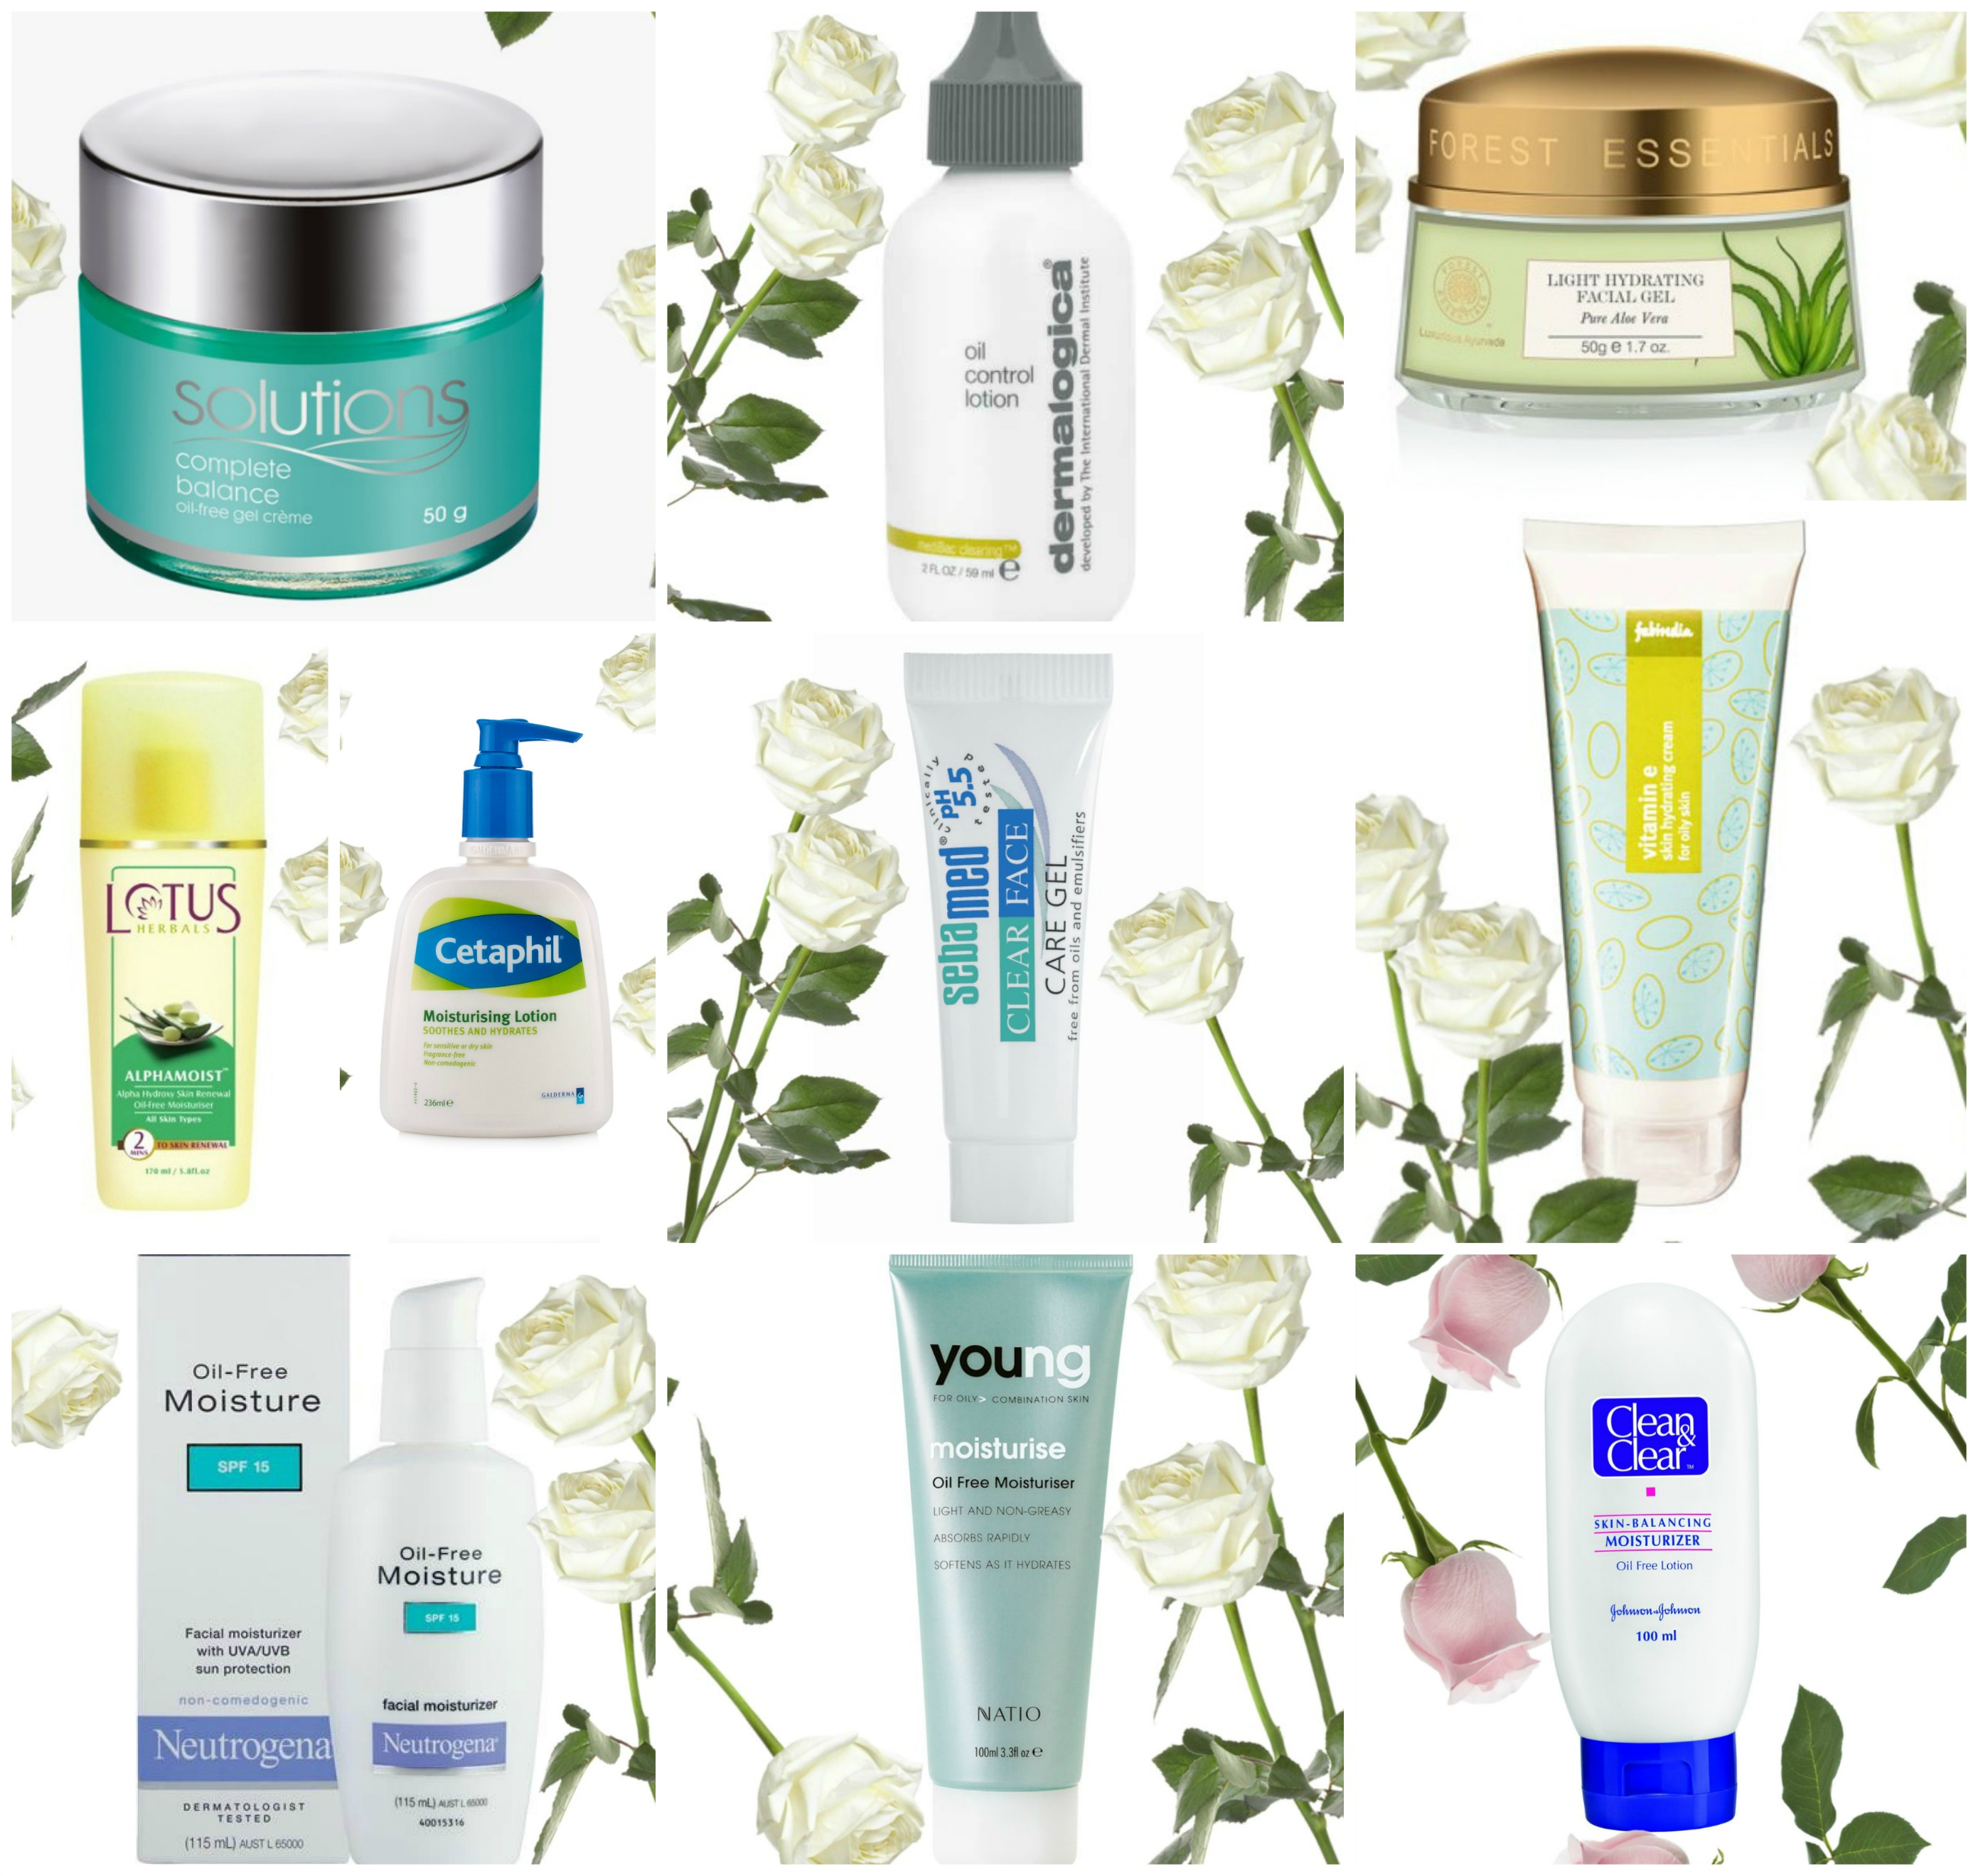 Best Moisturizers for Oily Skin – Our Top 10 Picks